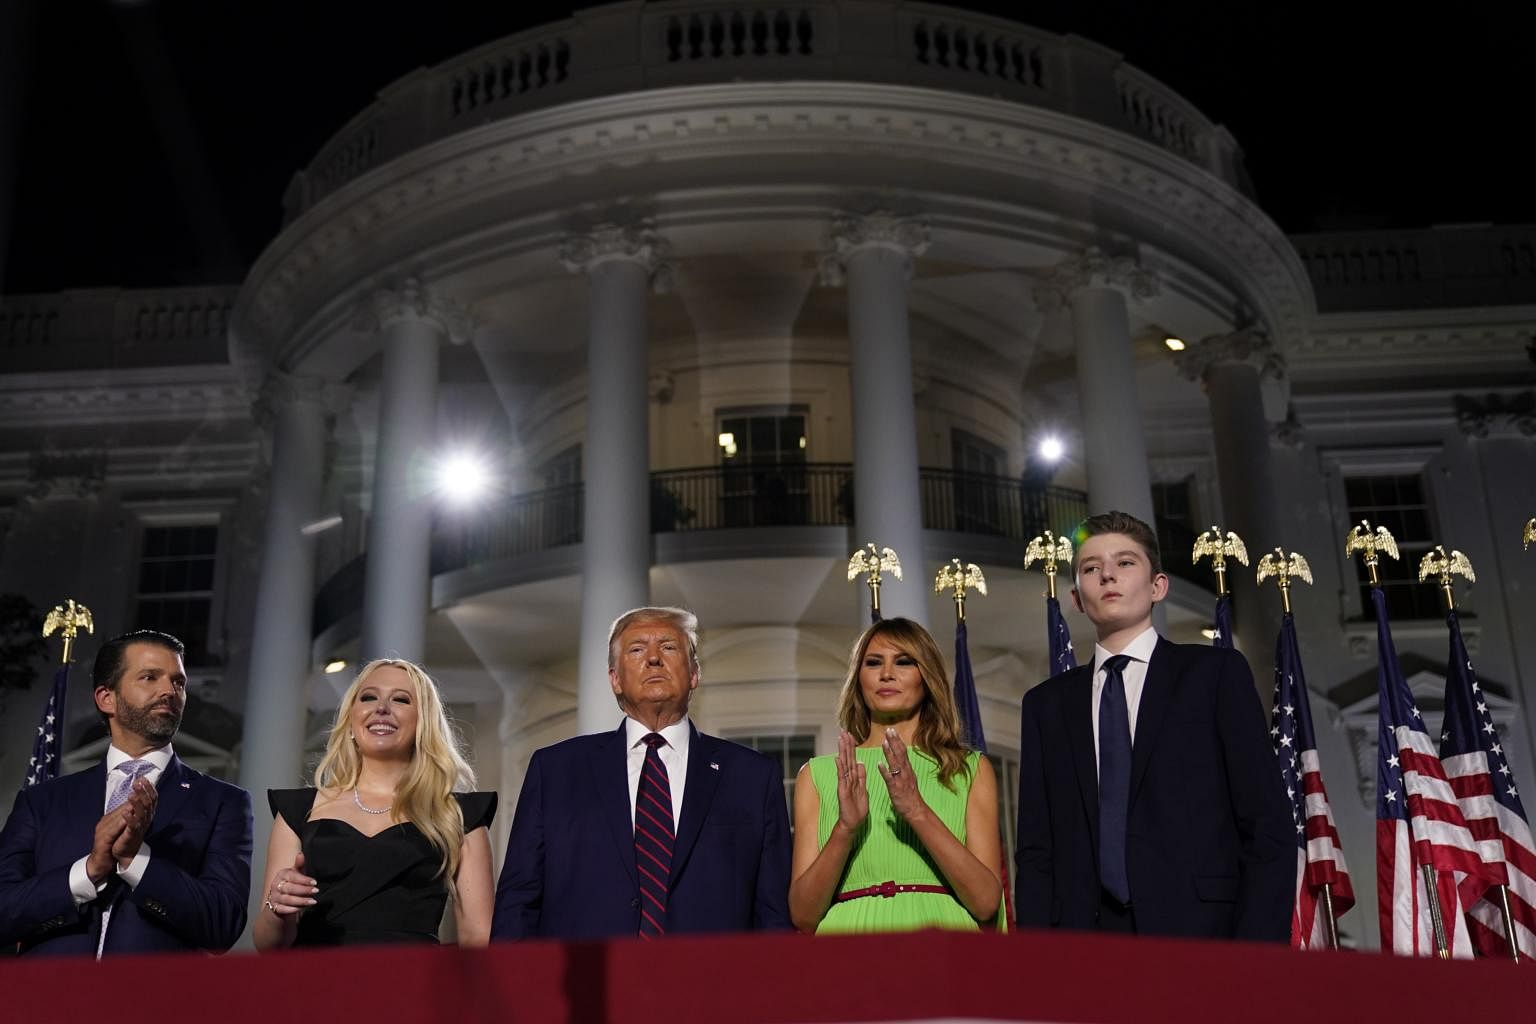 Trump Accepts Republican Nomination For President Attacks Biden While Promising To Rebuild Us Economy United States News Top Stories The Straits Times